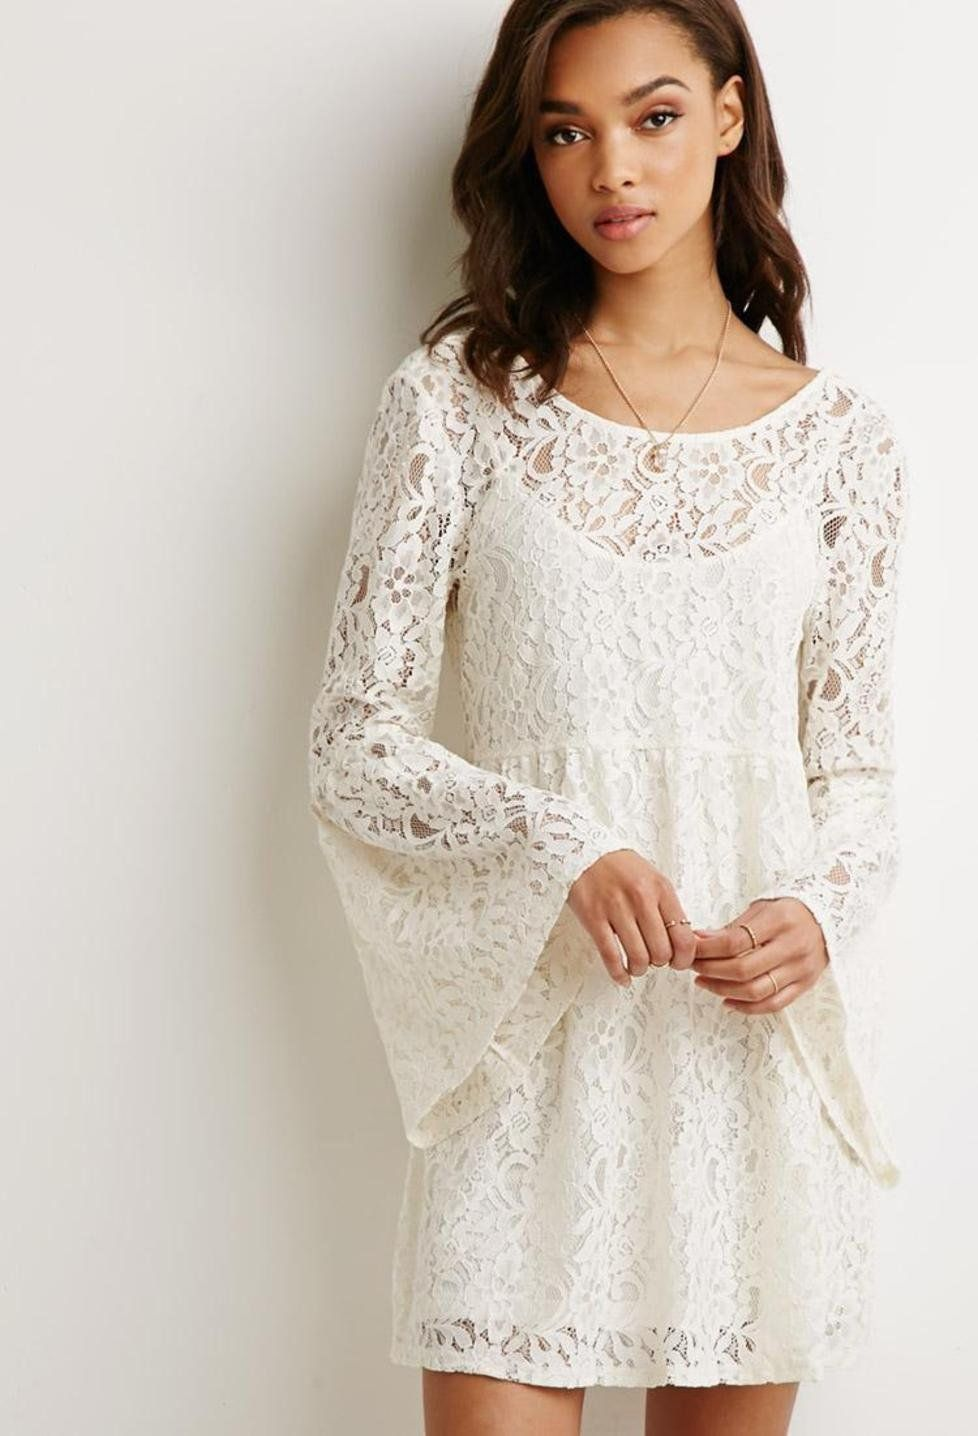 forever 21 cream lace dress | Gommap Blog | Long Sleeve Dresses ...